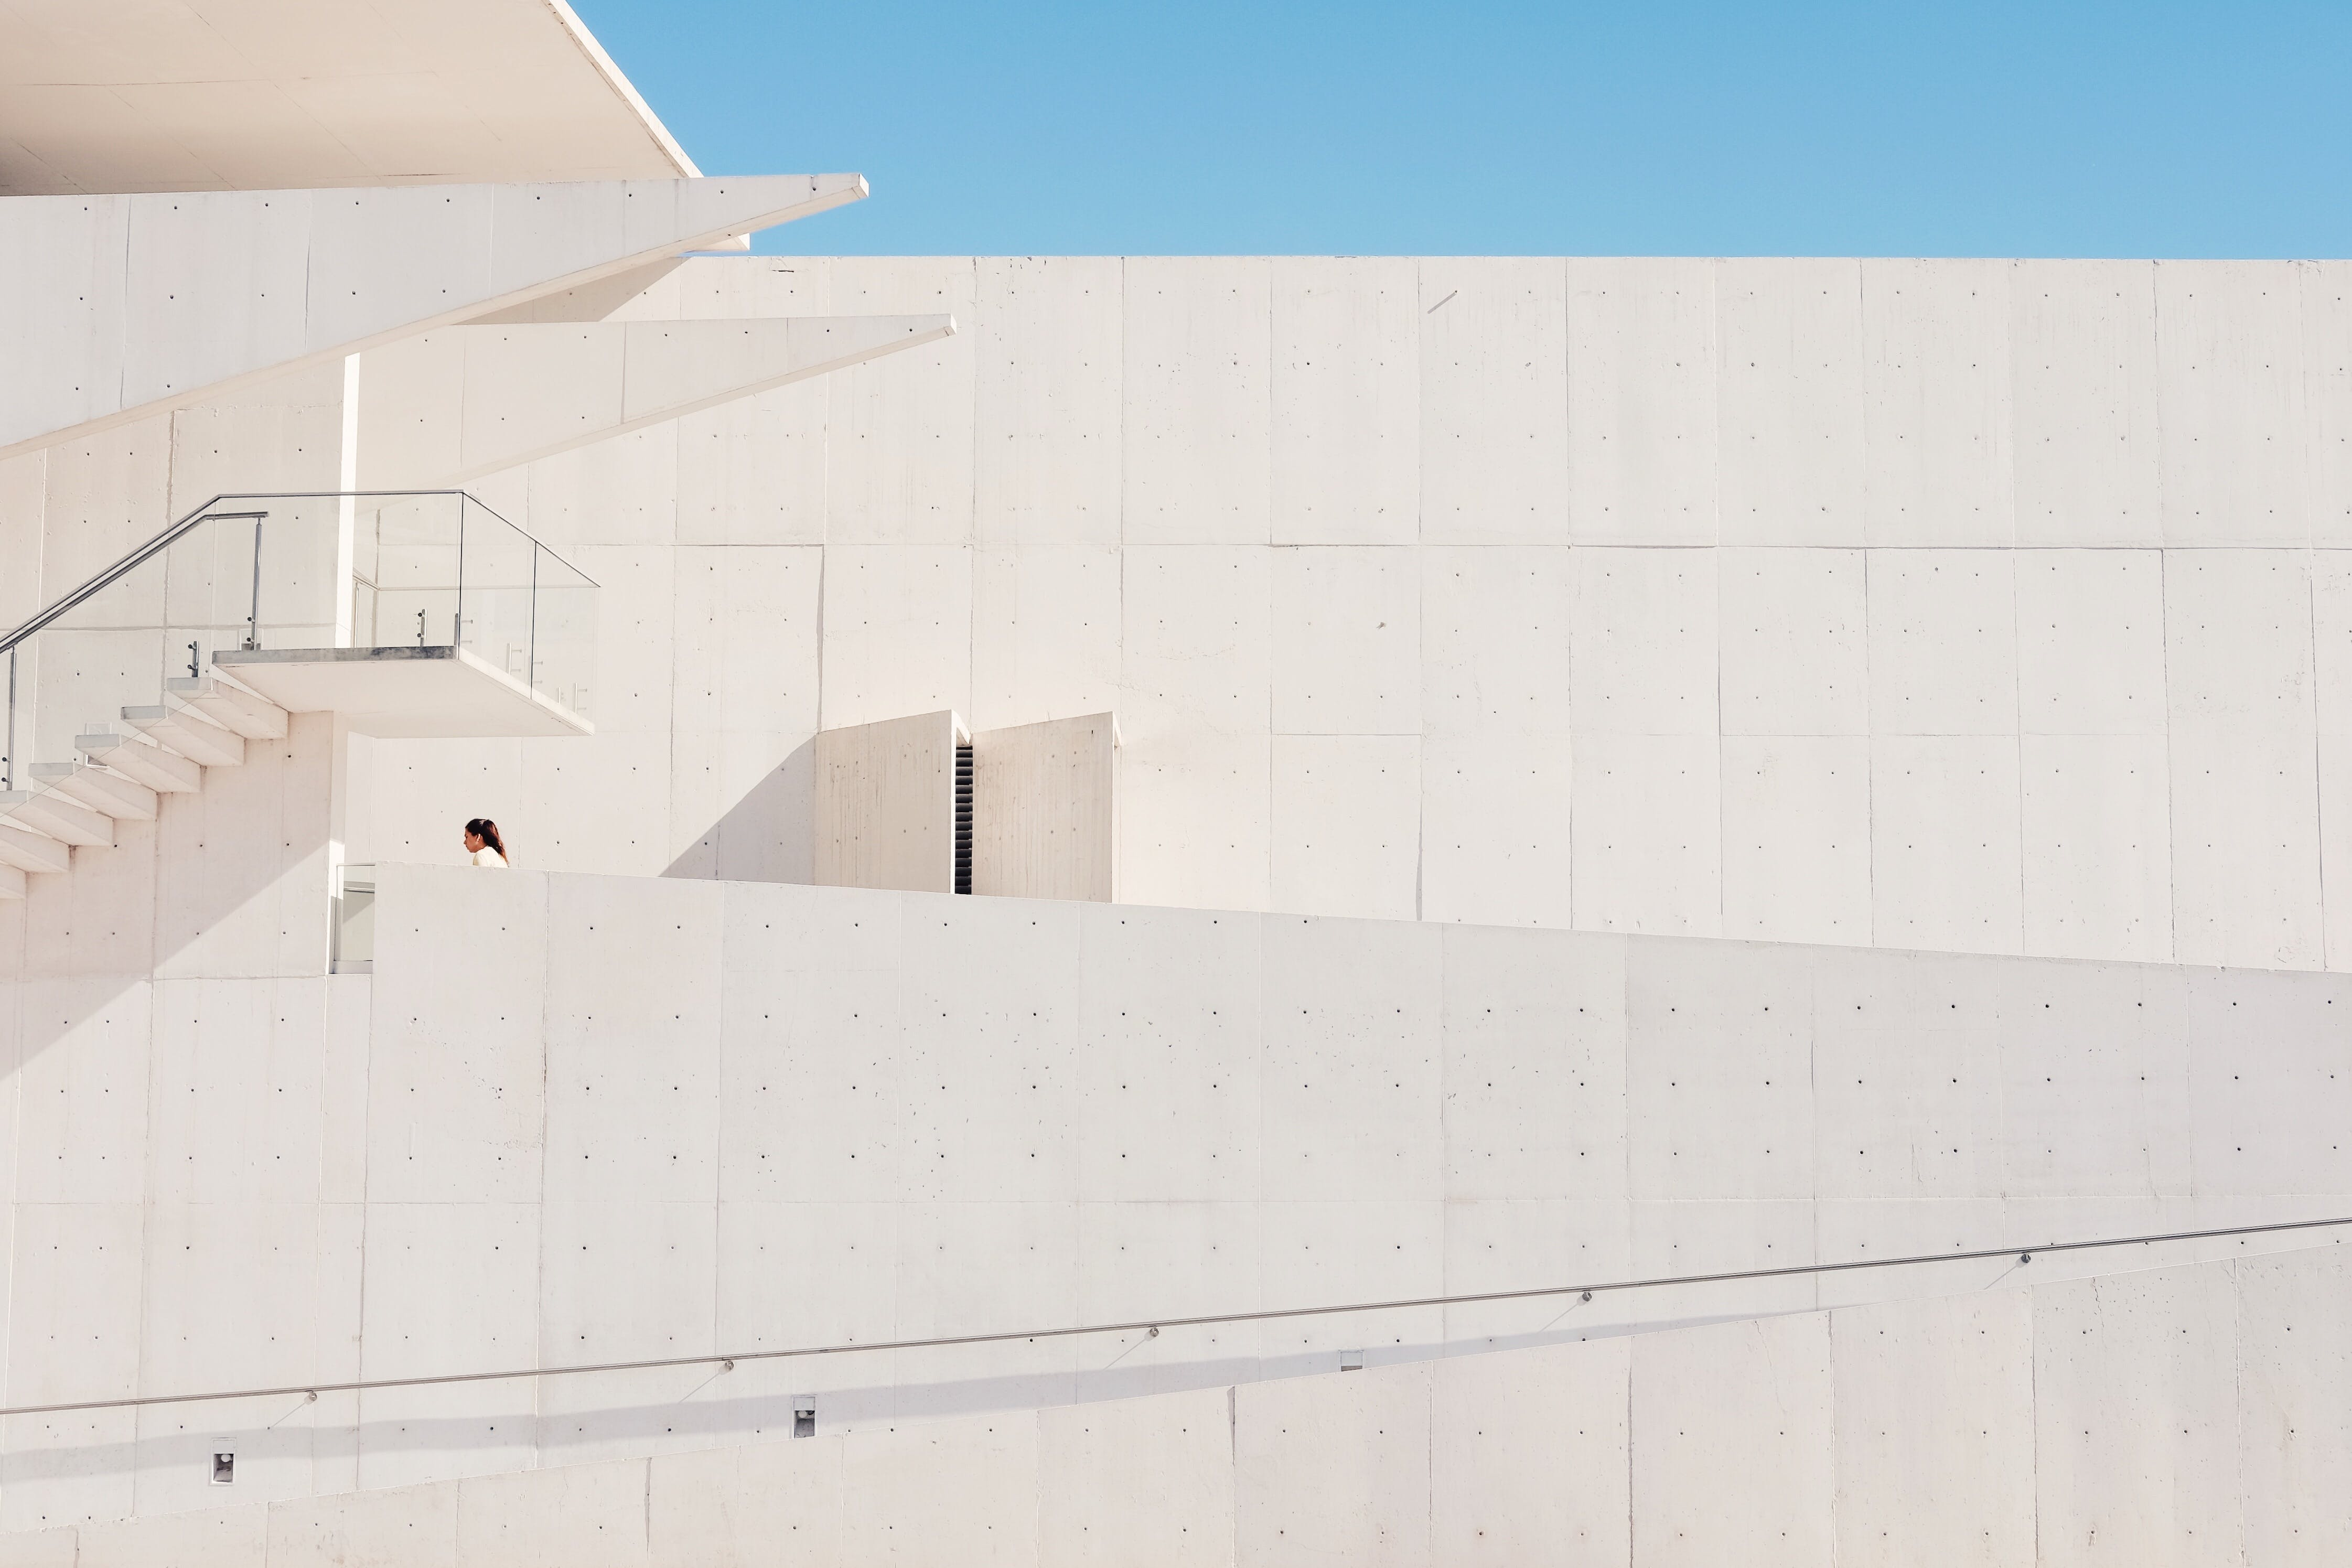 Person in White Shirt Walking on Concrete Building Under Blue Sky during Daytime